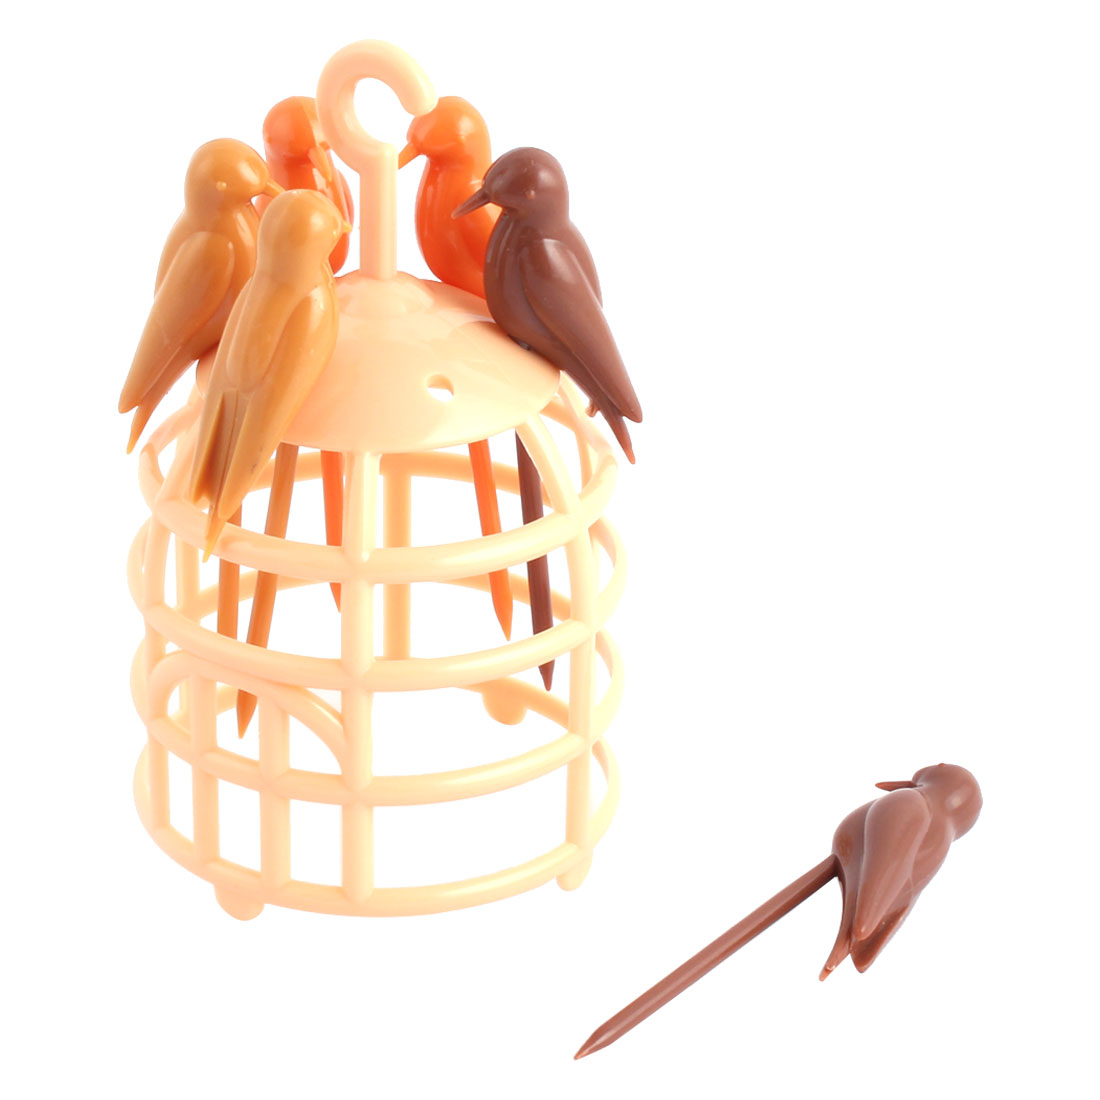 Plastic Birds Cage Shape Fruit Fork Holder Dessert Cake Decor Forks Light Yellow Set